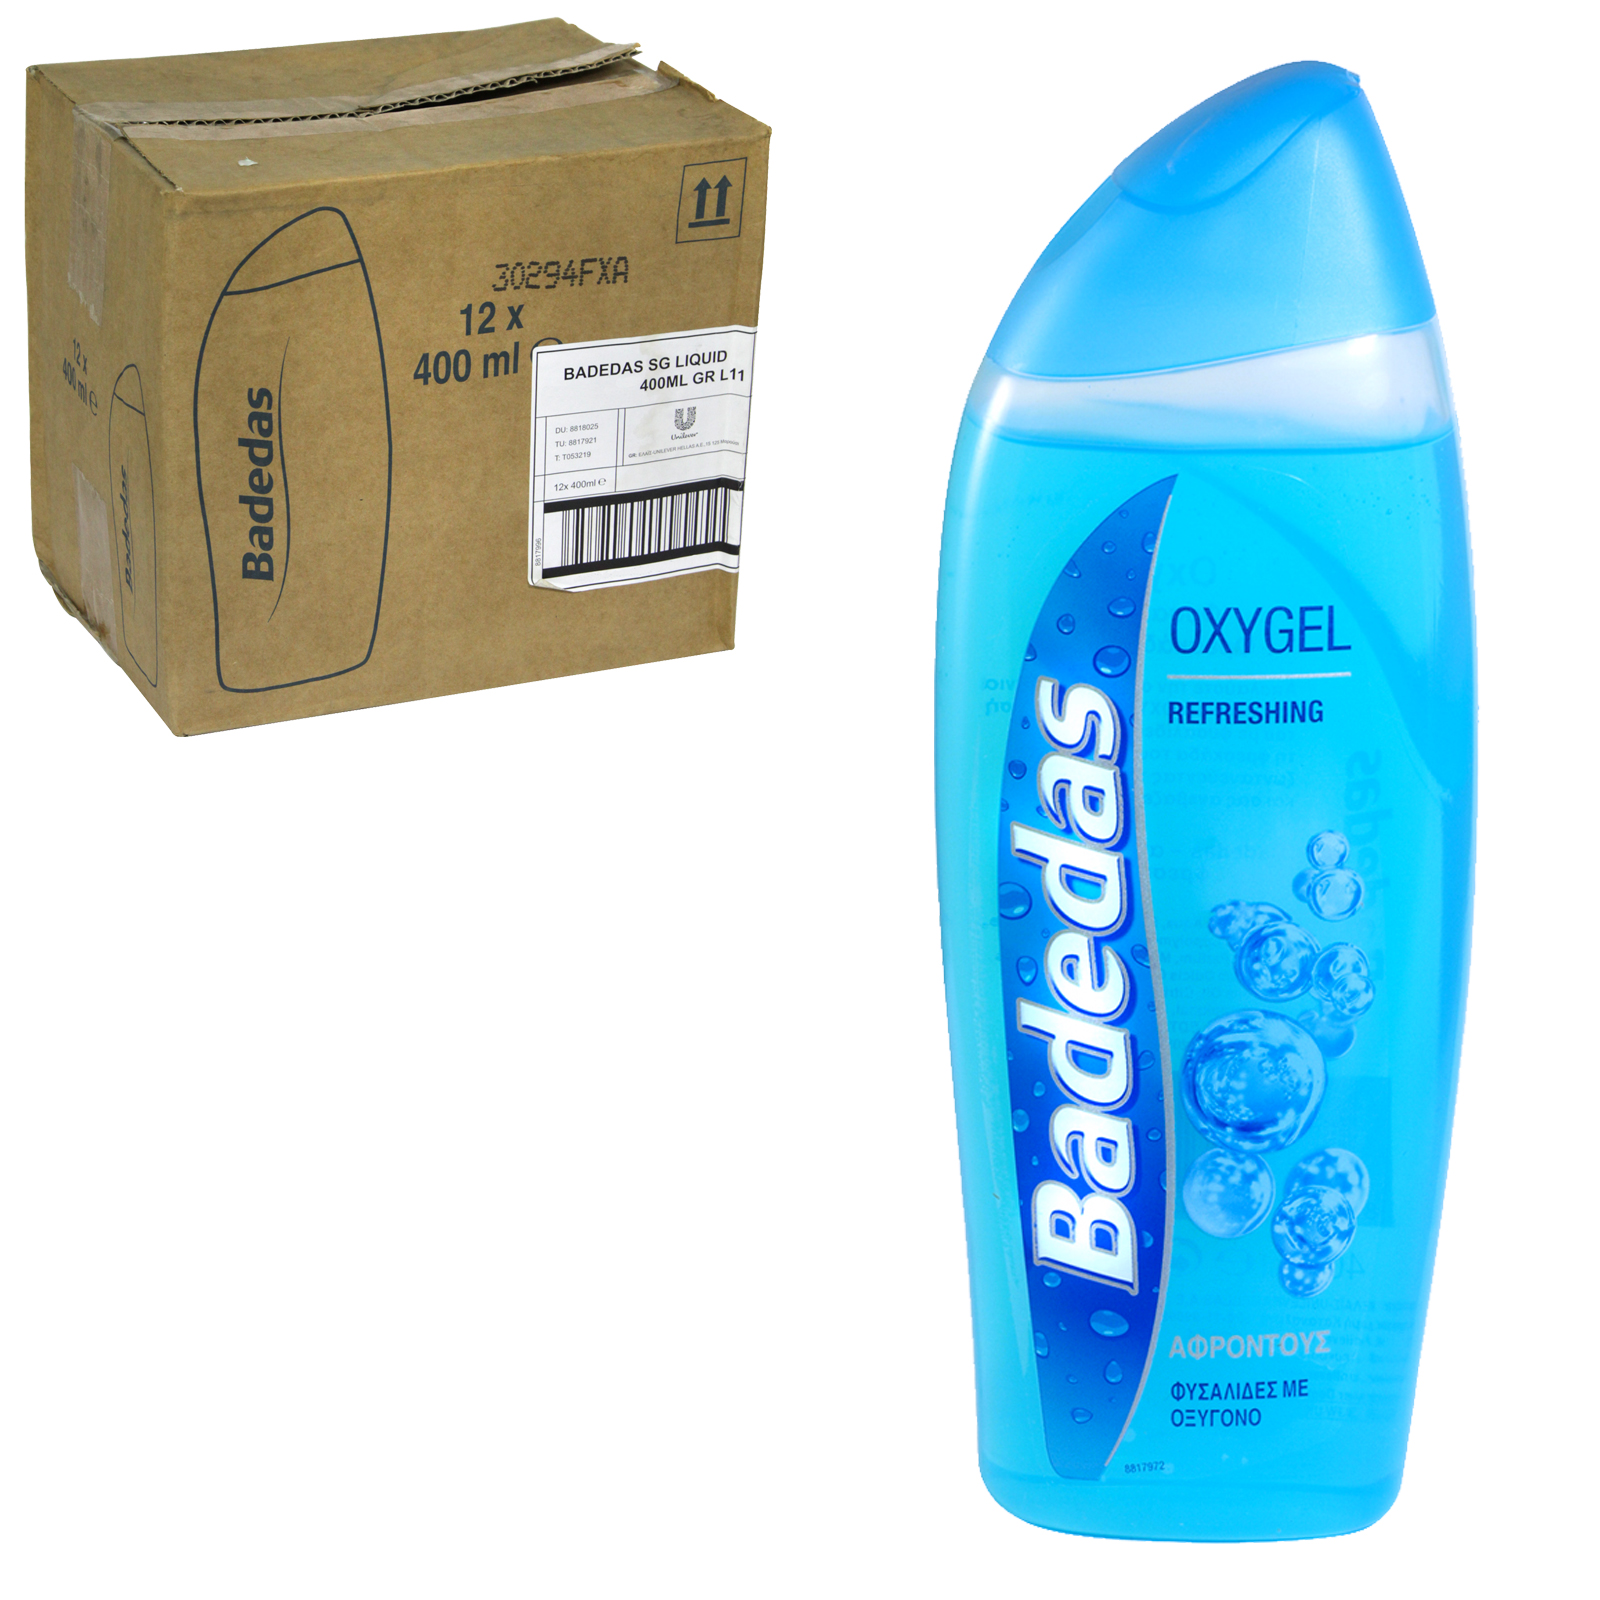 BADEDAS SHOWER GEL 400ML OXYGEL X12